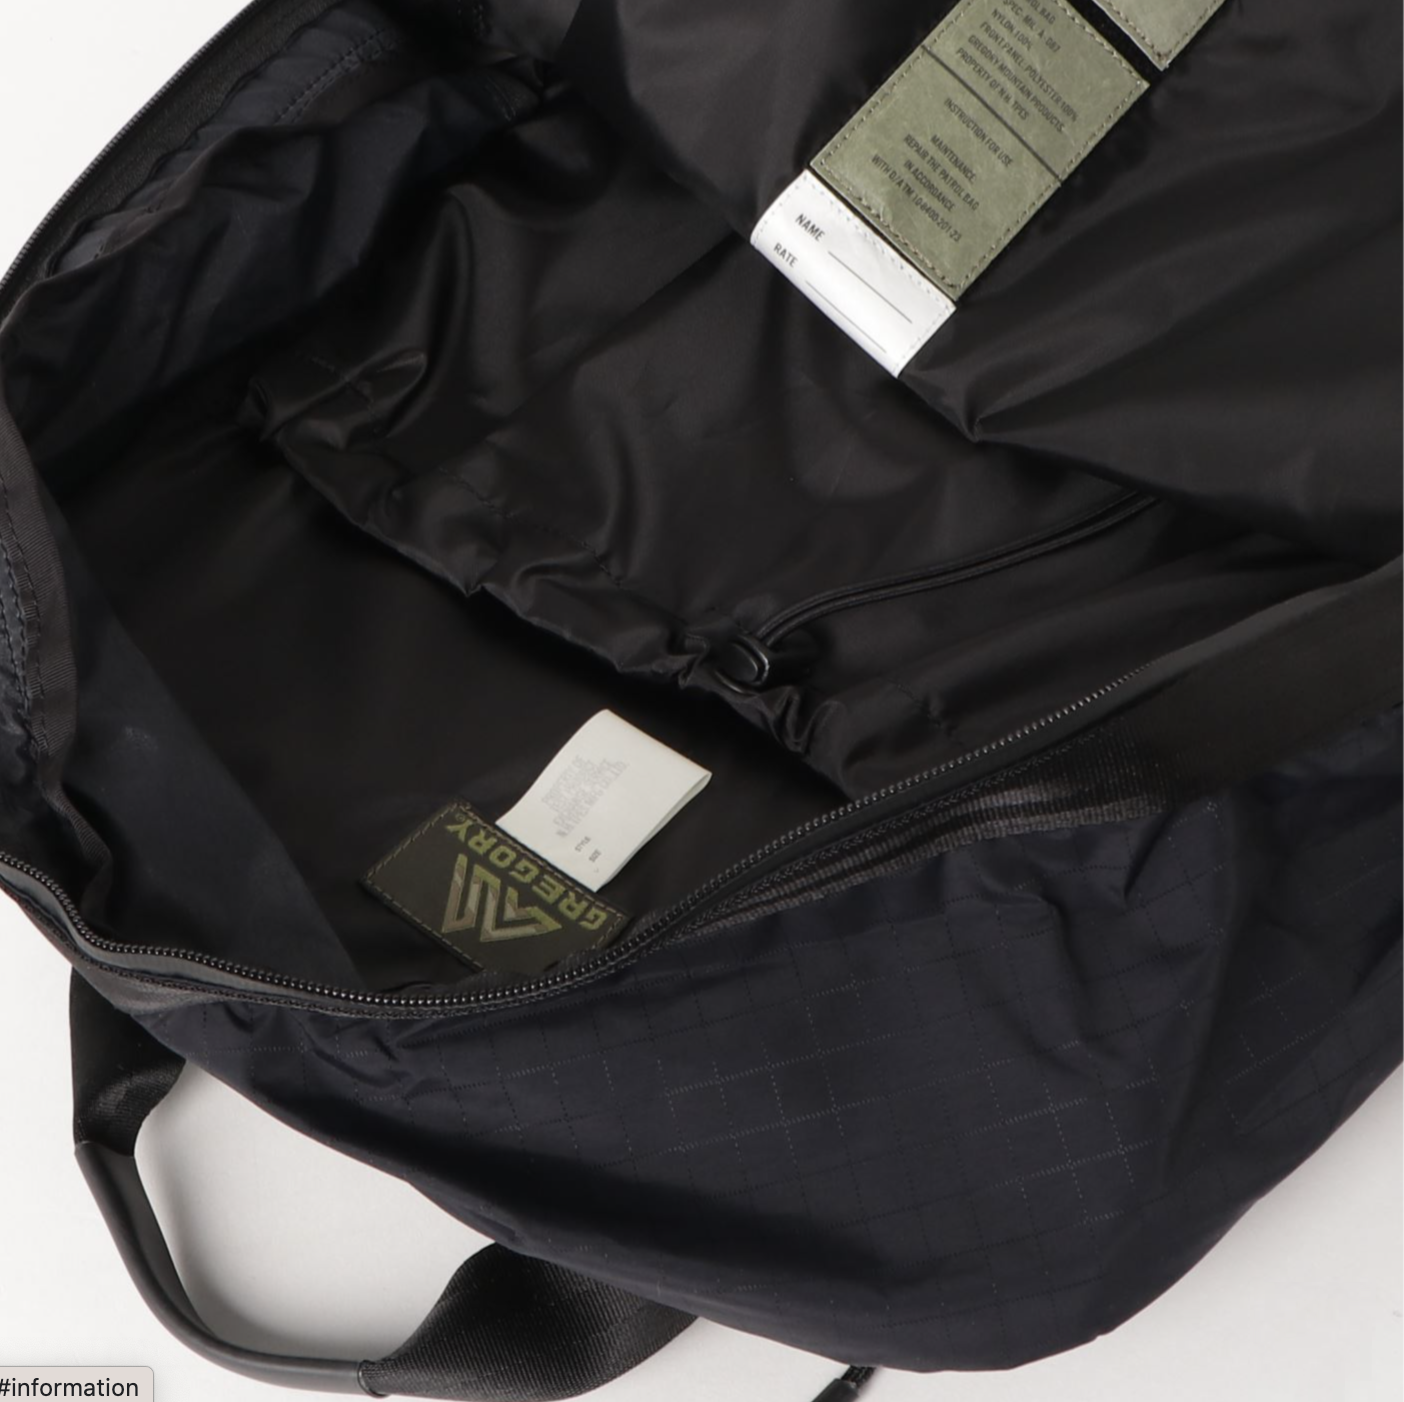 N.HOOLYWOOD TEST PRODUCT EXCHANGE SERVICE × GREGORY / 9211-AC07 pieces BACK PACK 内側